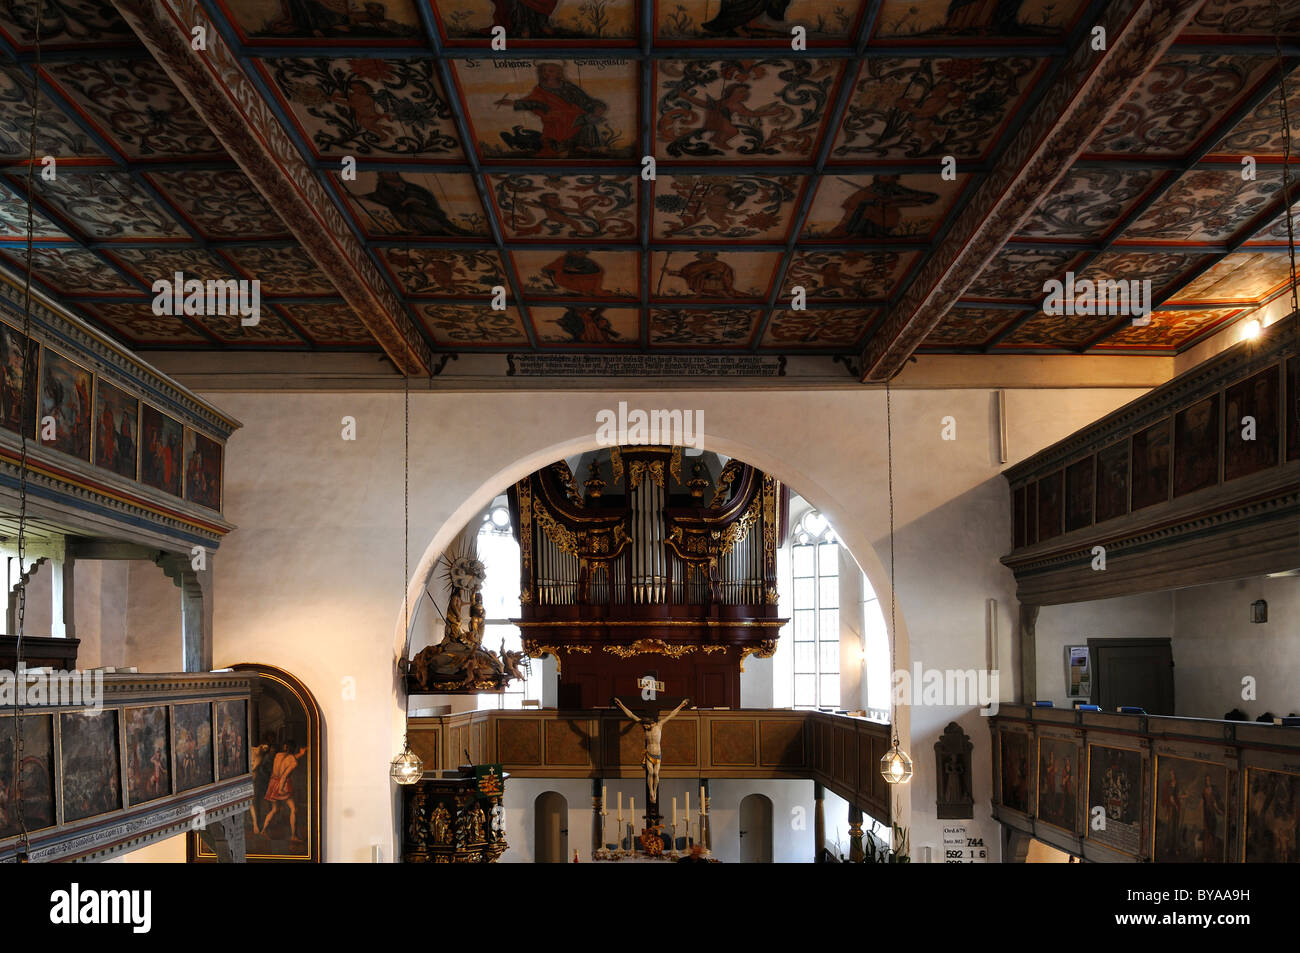 Interior With Painted Coffered Ceiling, Organ And Altar Of  St. Veit Und St. Michaels Kirche Church, 1634 1682, Pfarrberg